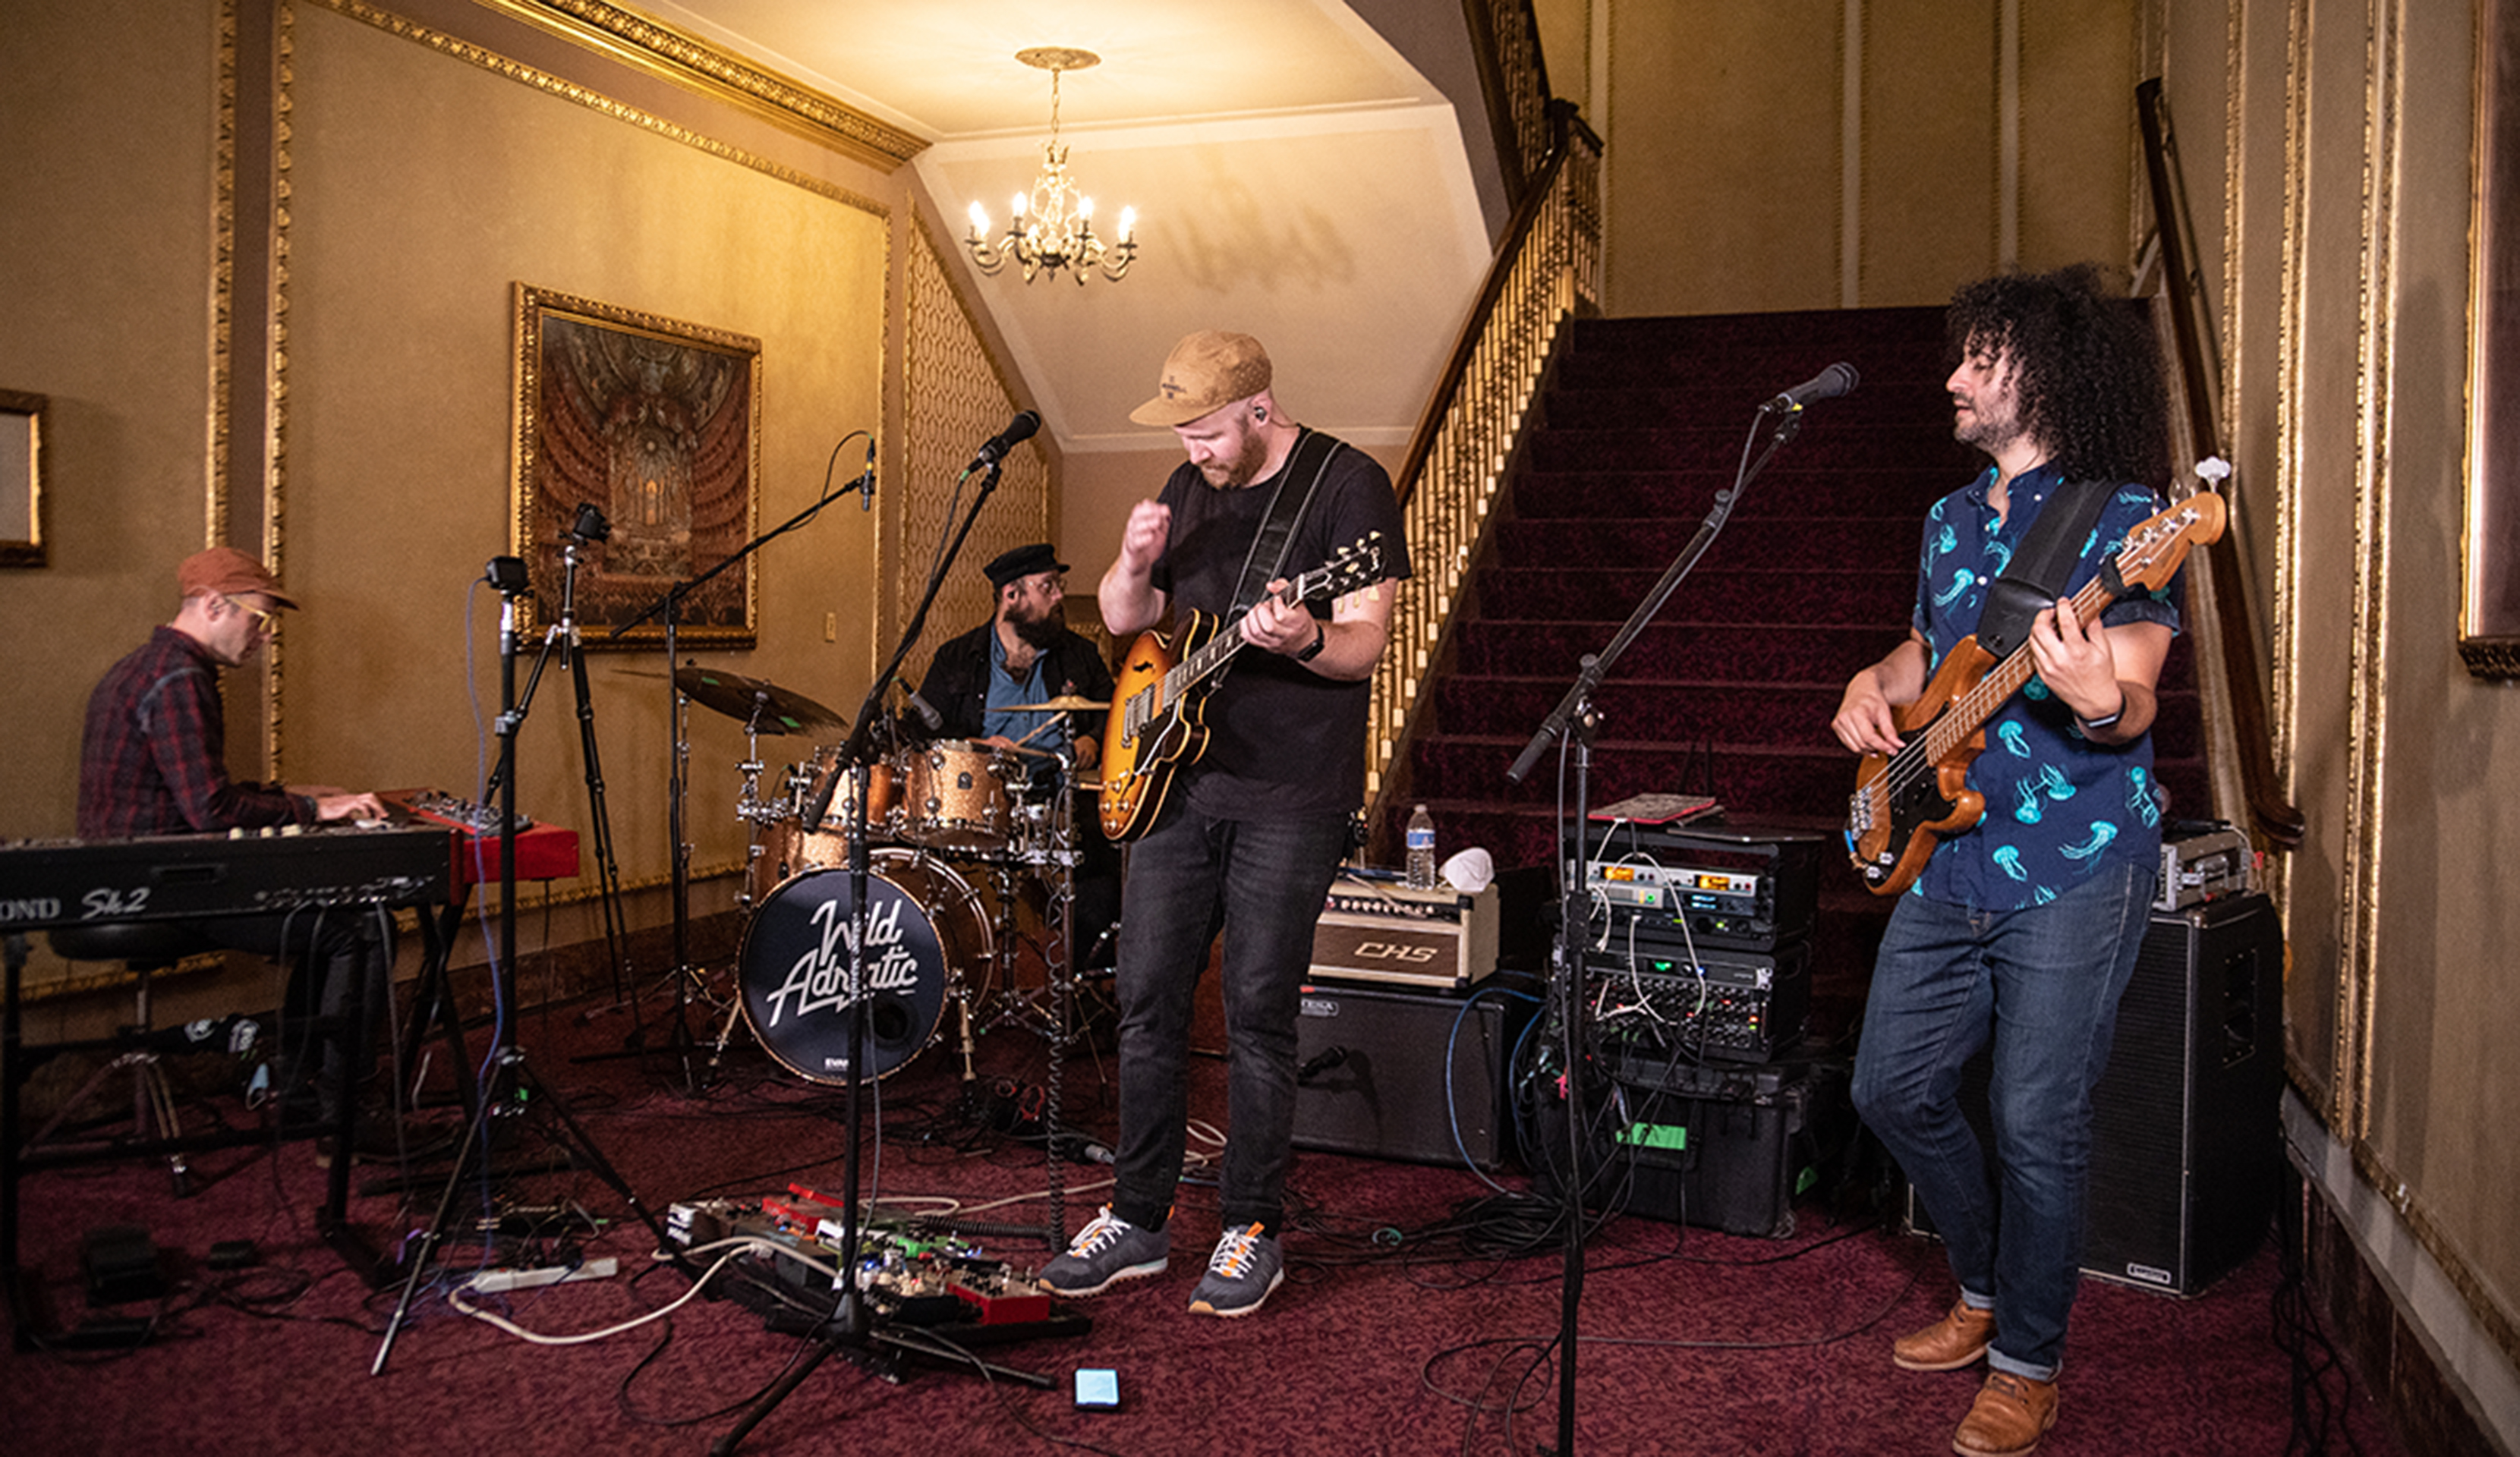 VIDEO: Wild Adriatic Live From the Palace Theatre | Palace Sessions EP. 4